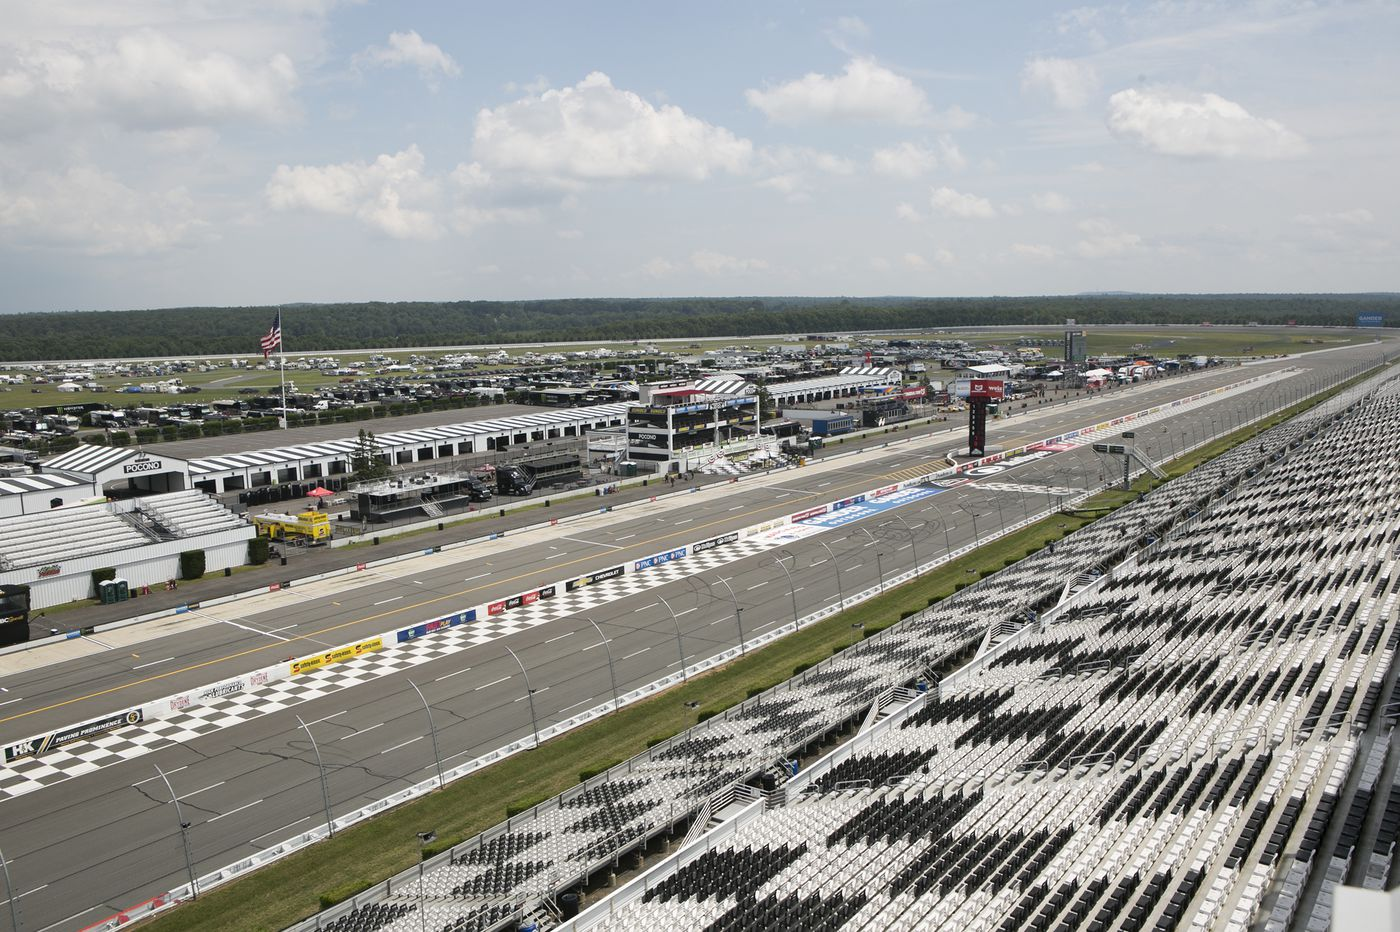 NASCAR and organic food make a run together in the Poconos